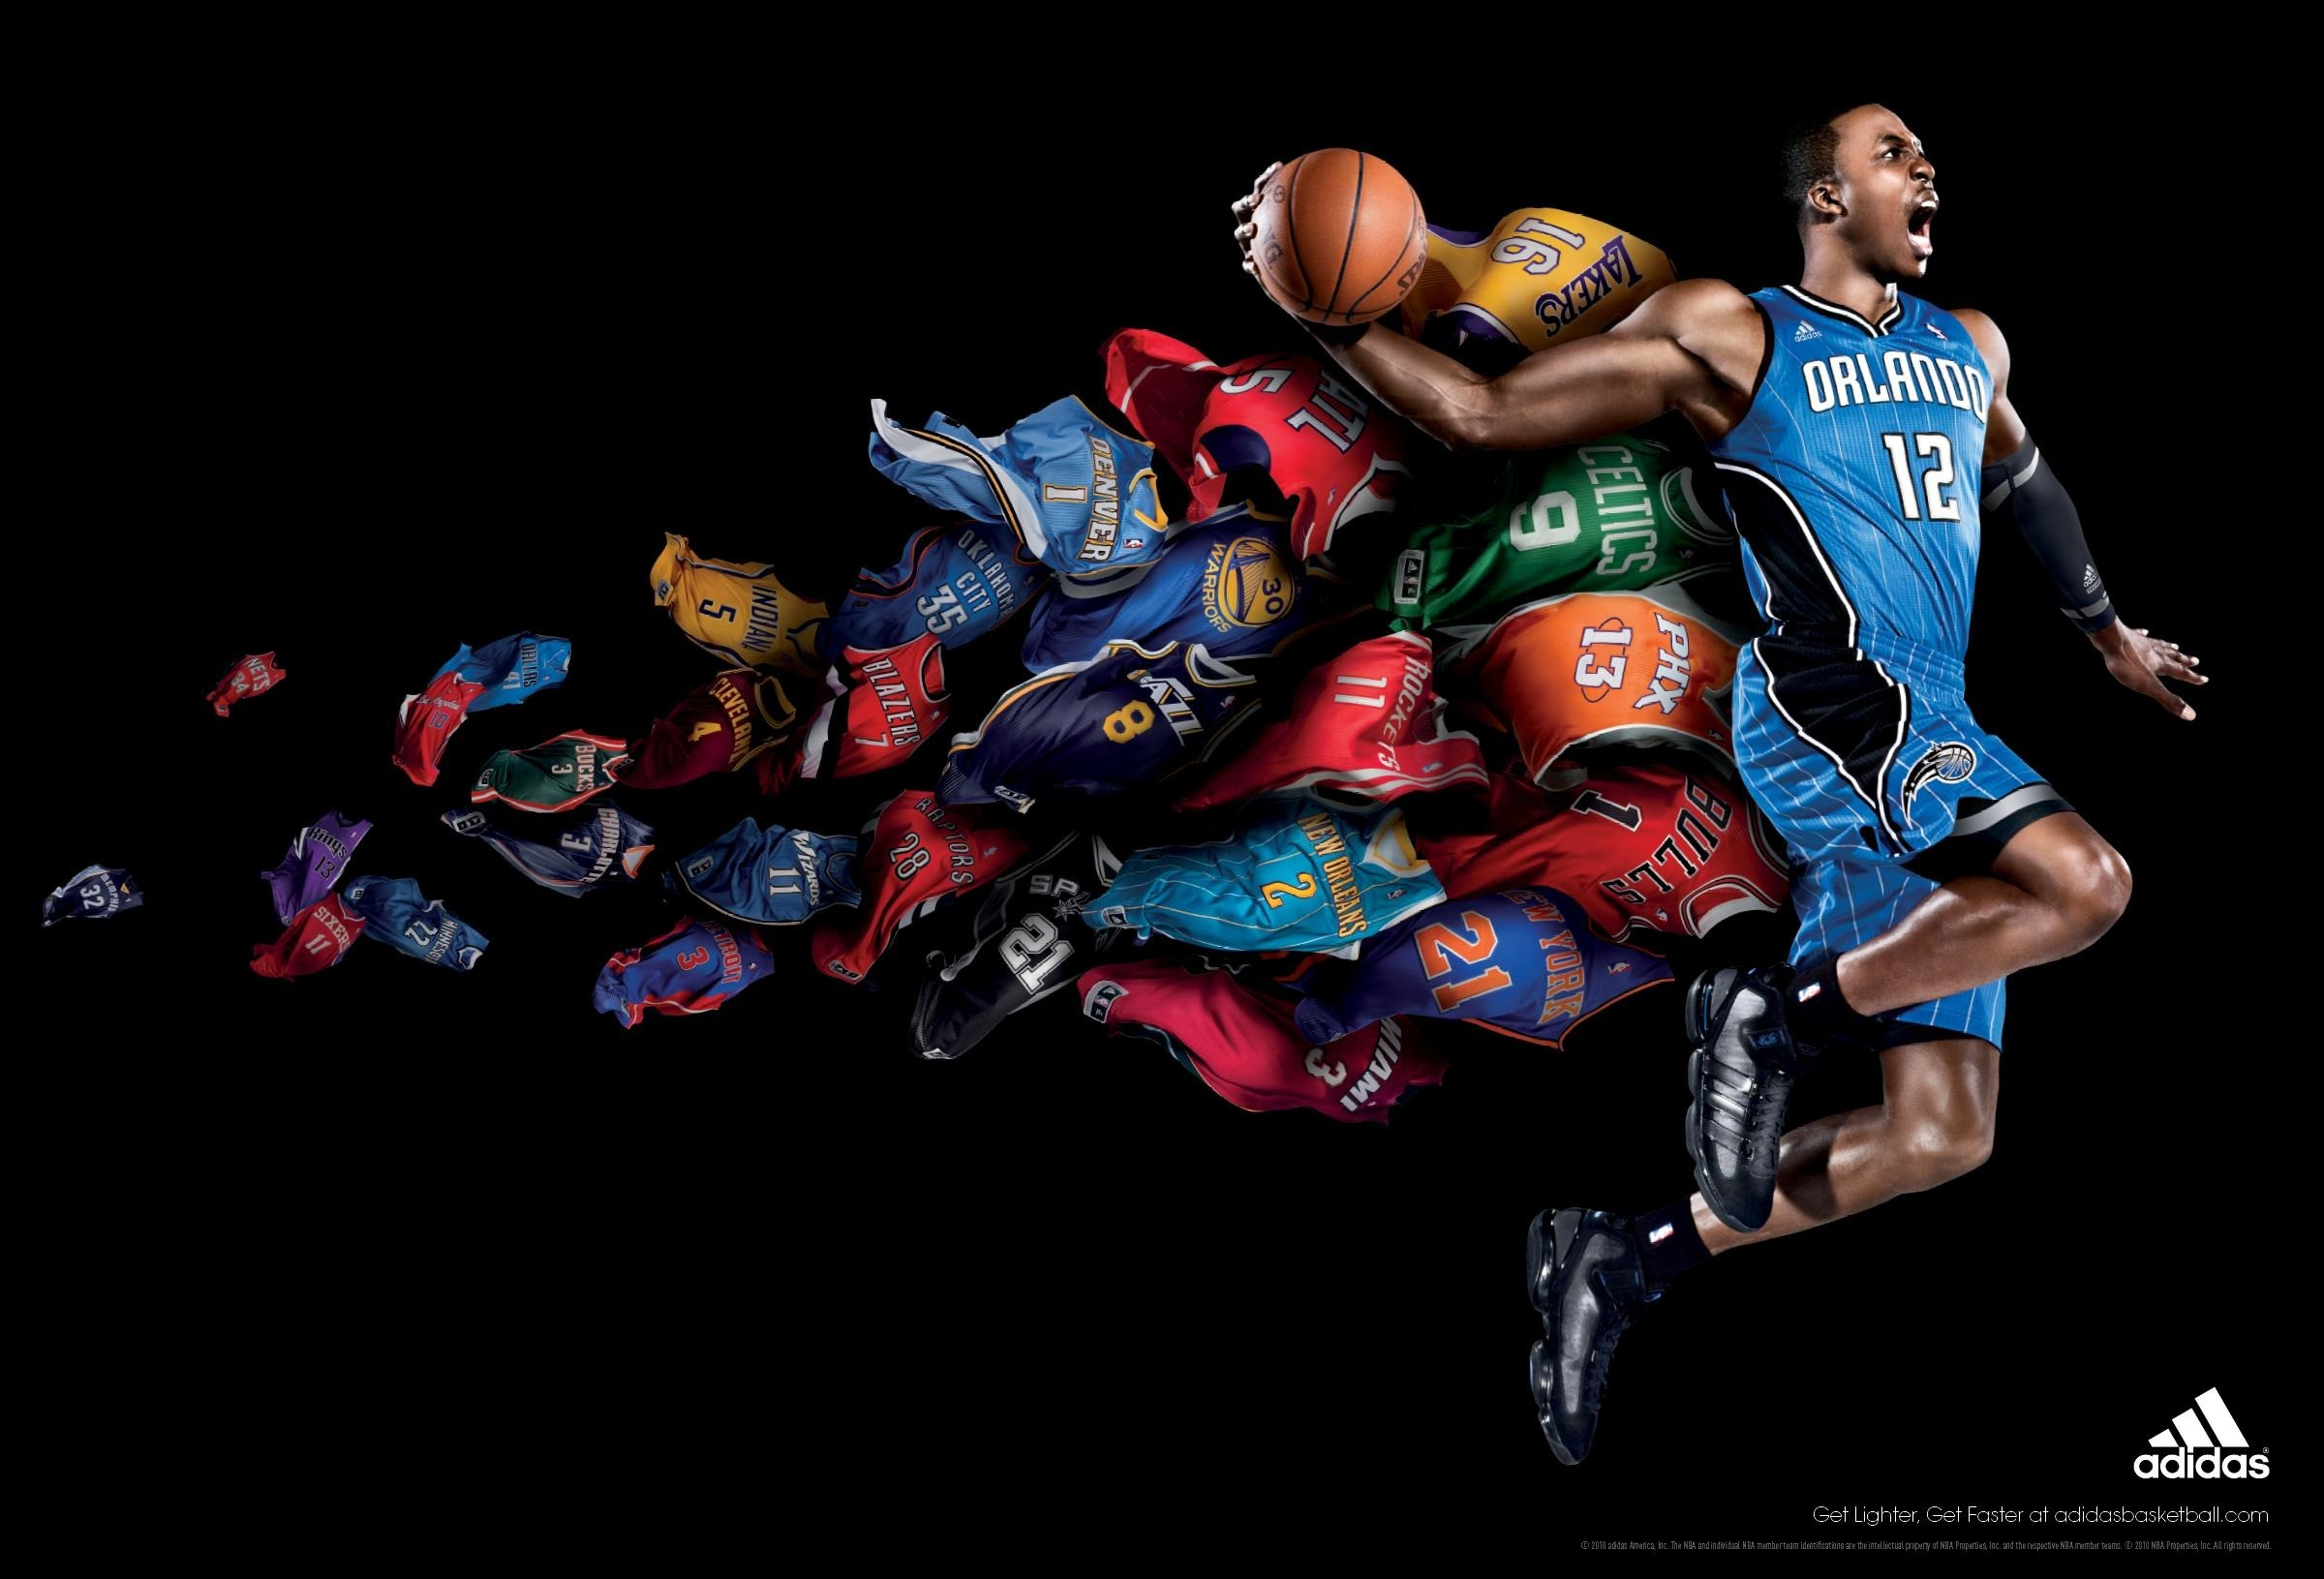 Cool Basketball Pictures Images amp Pictures  Becuo